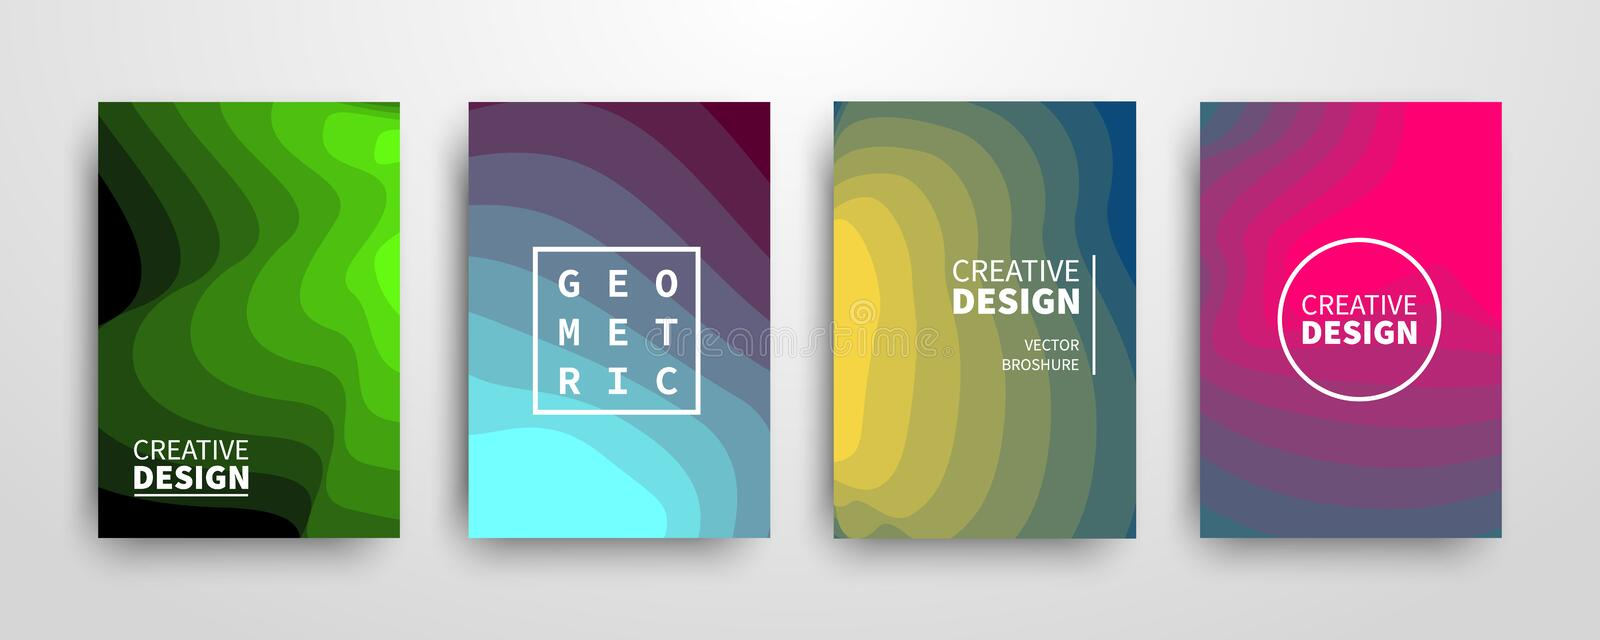 Modern futuristic abstract geometric covers set royalty free illustration